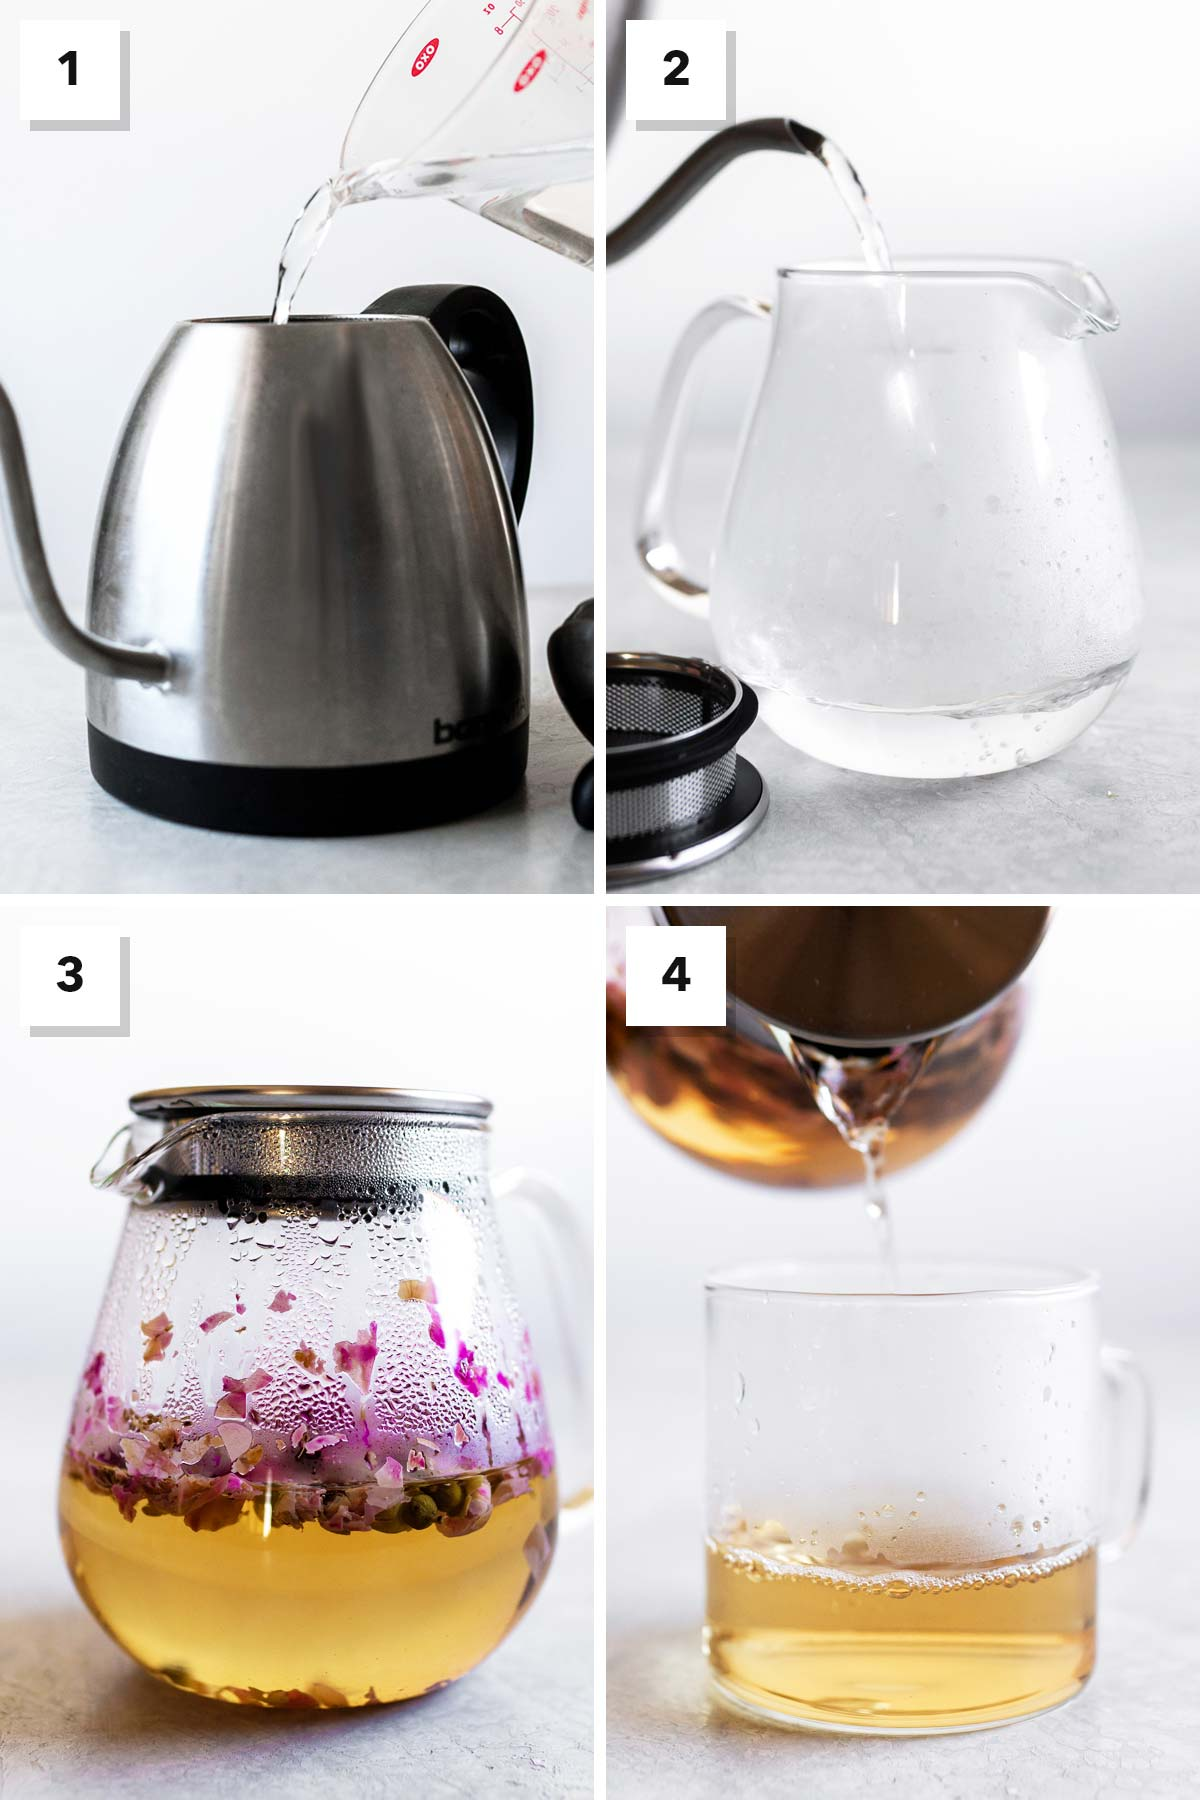 Four photos showing the steps to make rose tea.